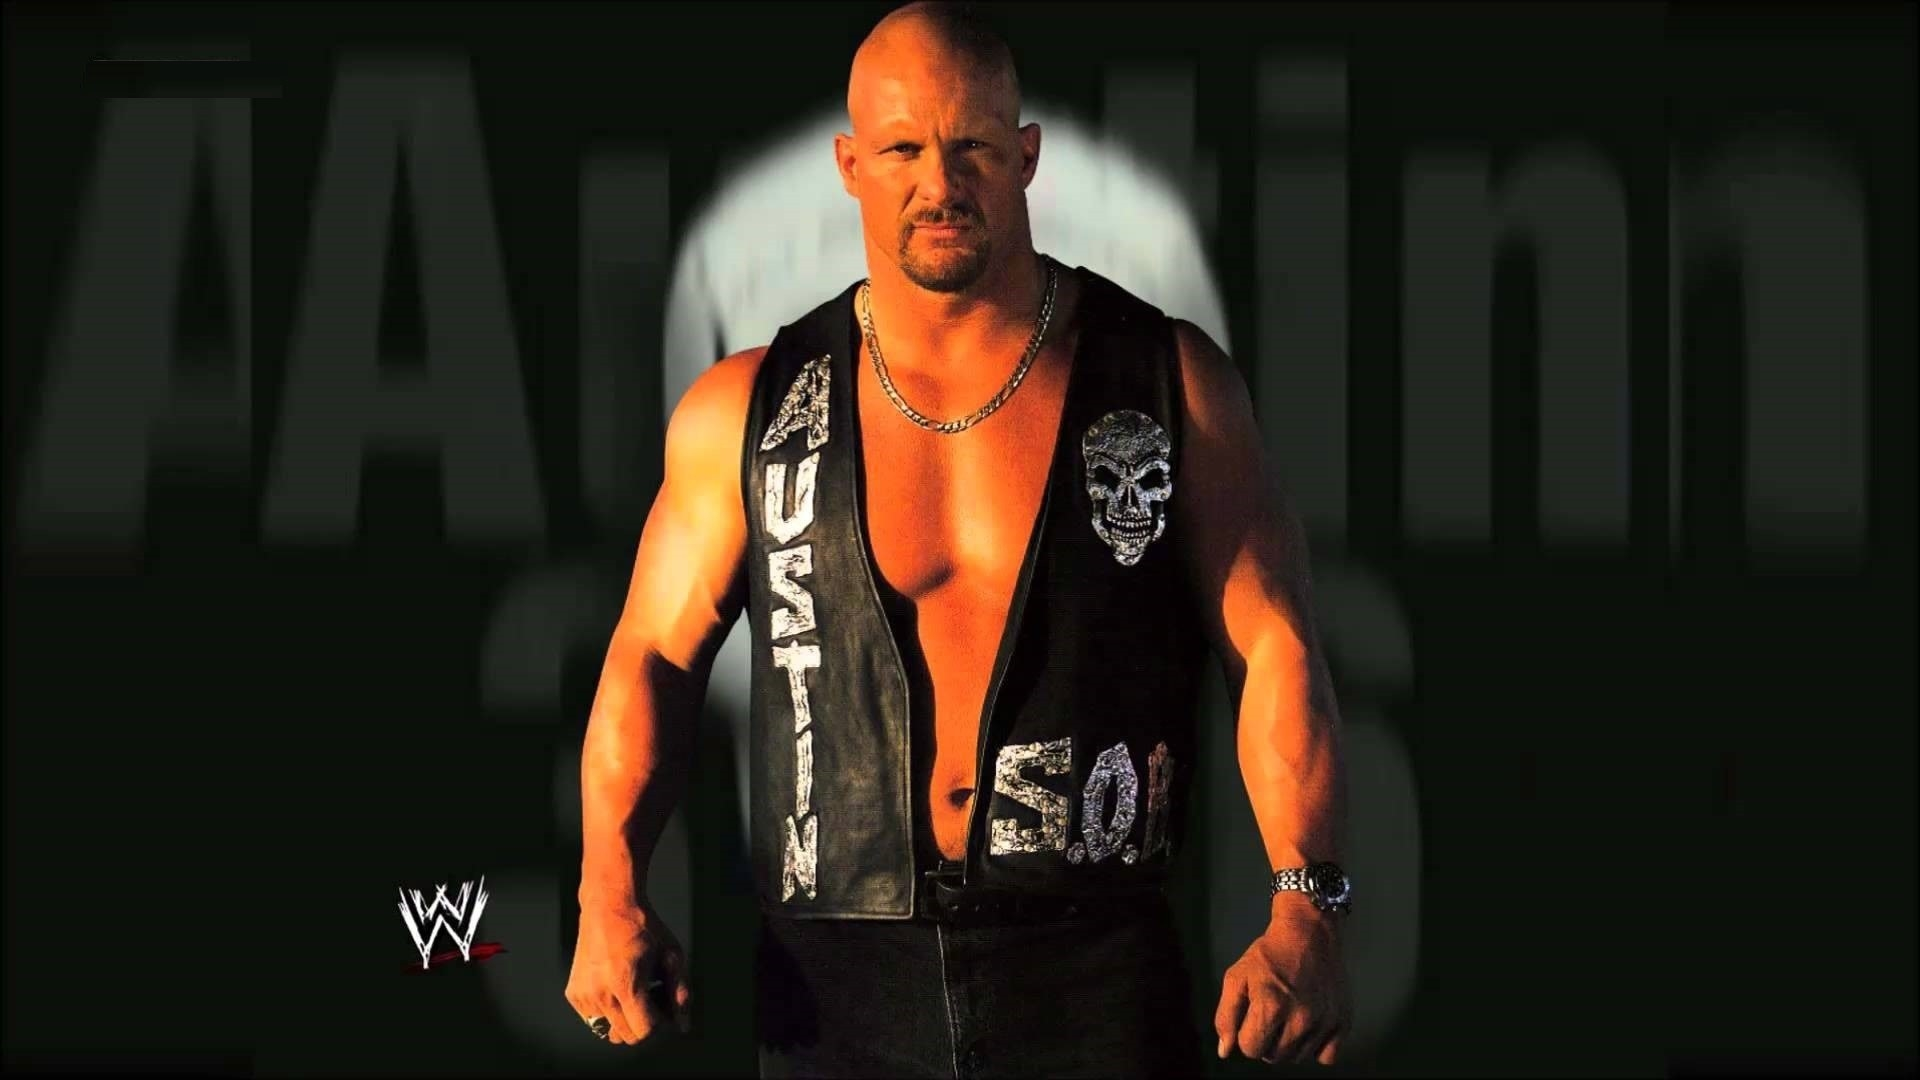 stone cold steve austin 3 16 wallpaper wwe